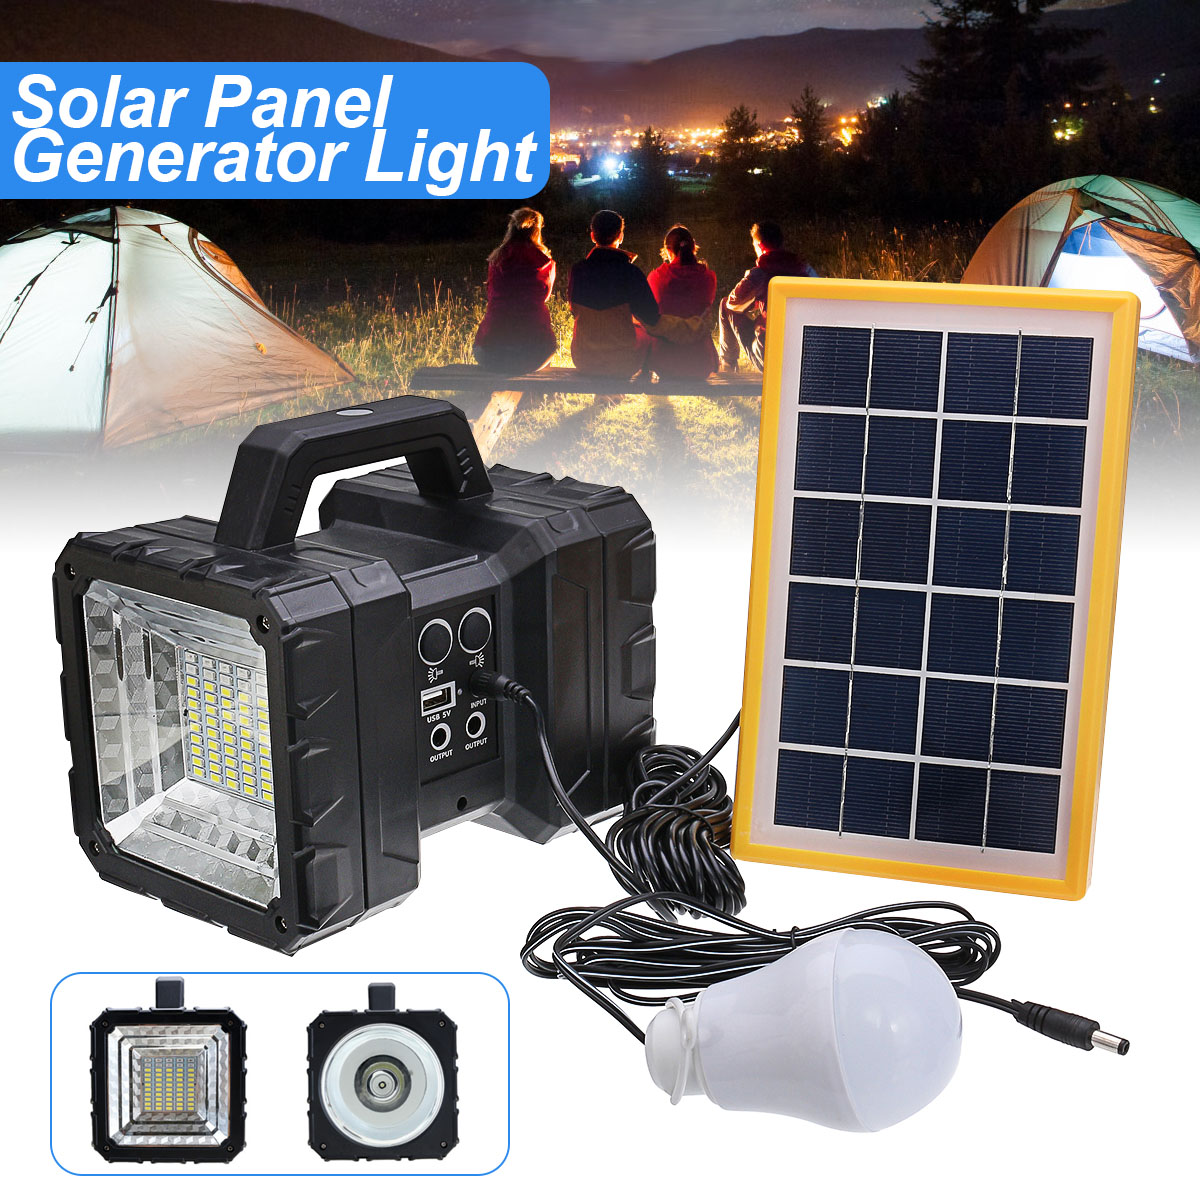 Portable Solar Panels Charging Generator Power System Outdoor Power Bank Home Outdoor LED Lighting System Camping Lantern home outdoor lighting portable led solar panels charging generator power system support usb disk sd card fm function rc